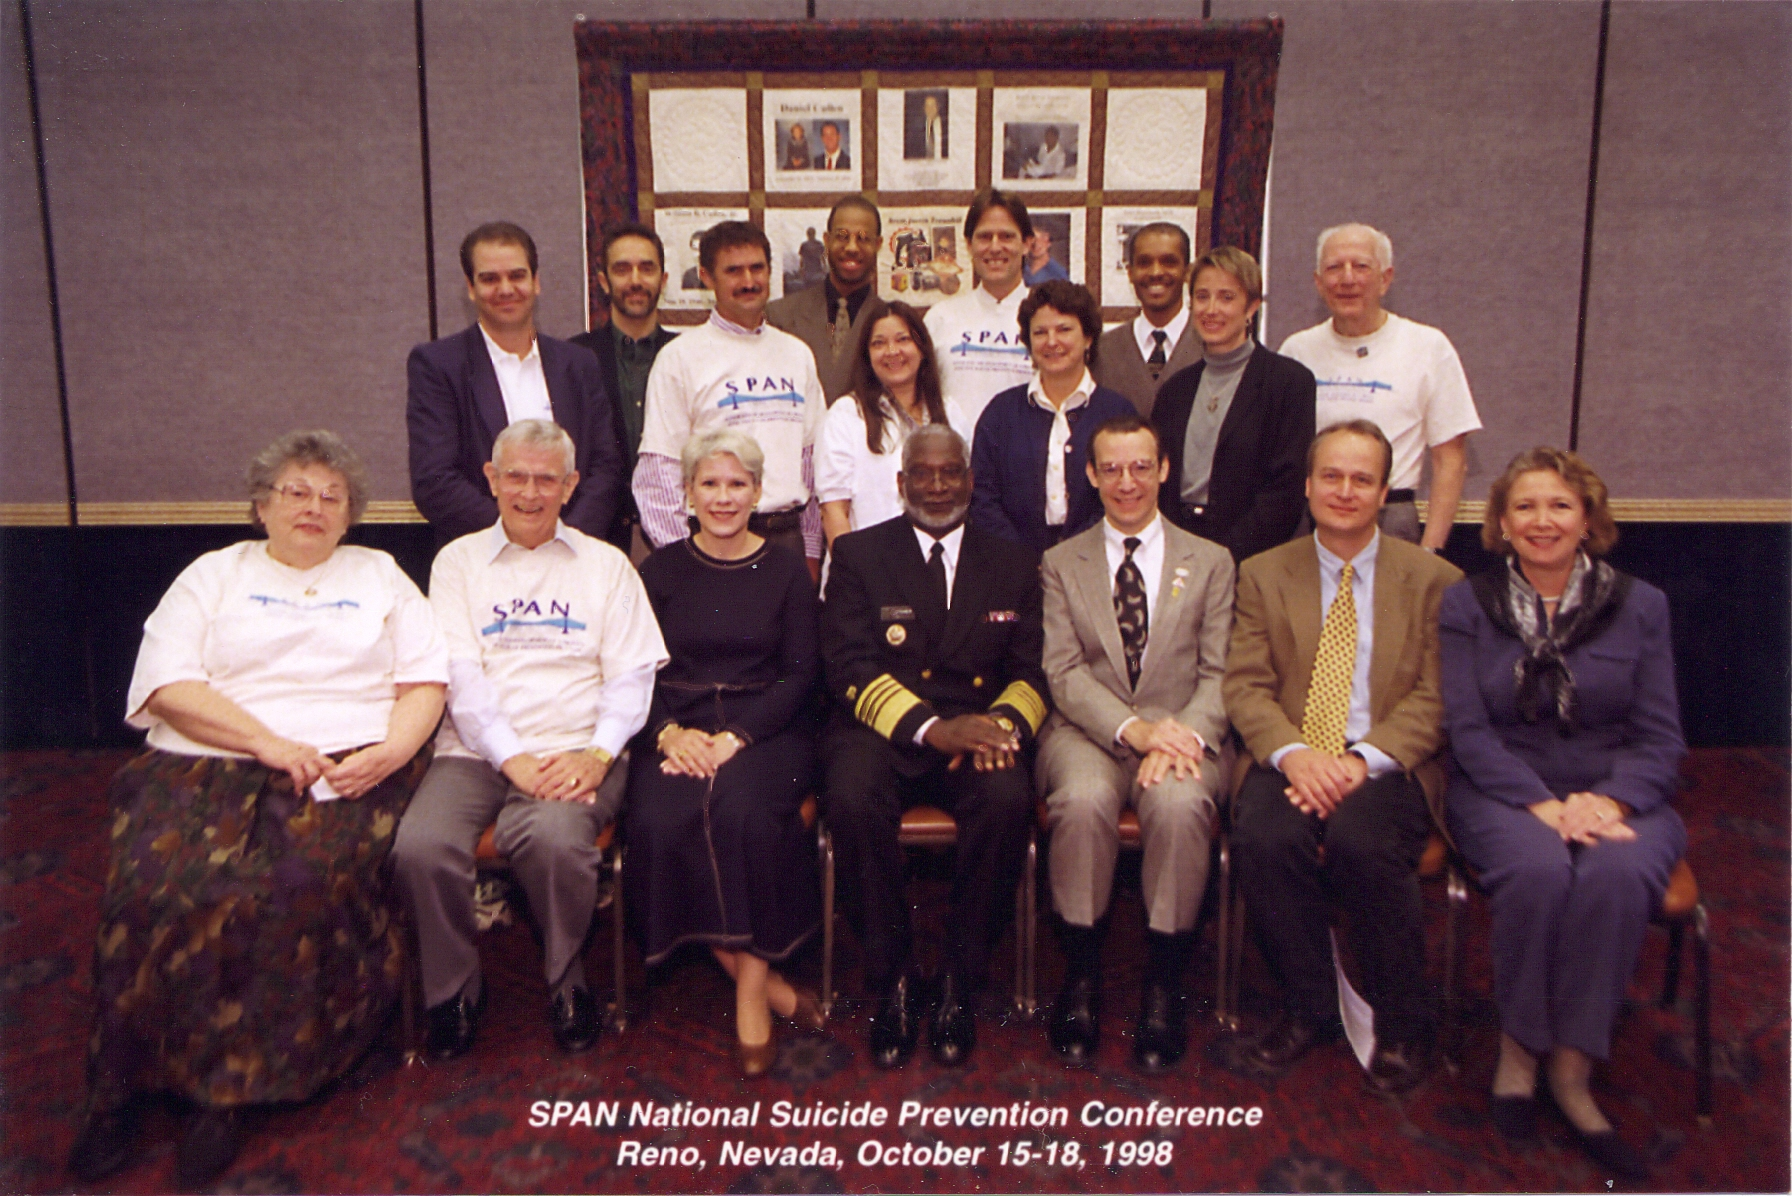 Reno Conference Leaders - 1998